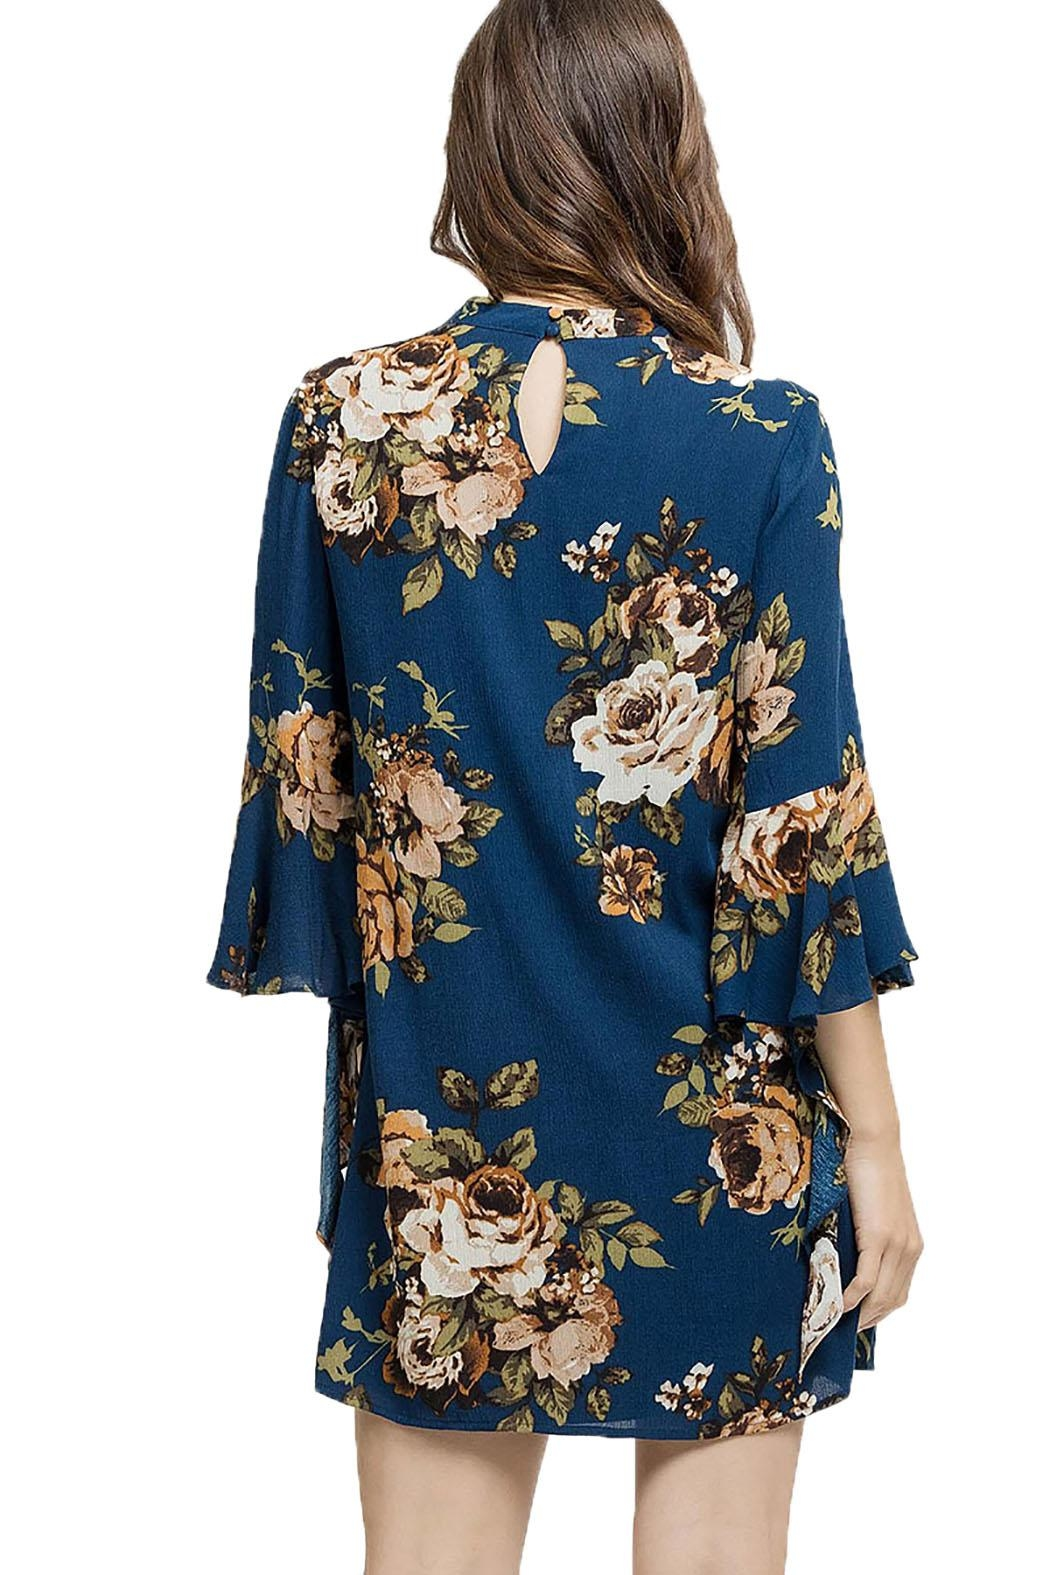 Blu Pepper Woven Floral Dress - Side Cropped Image